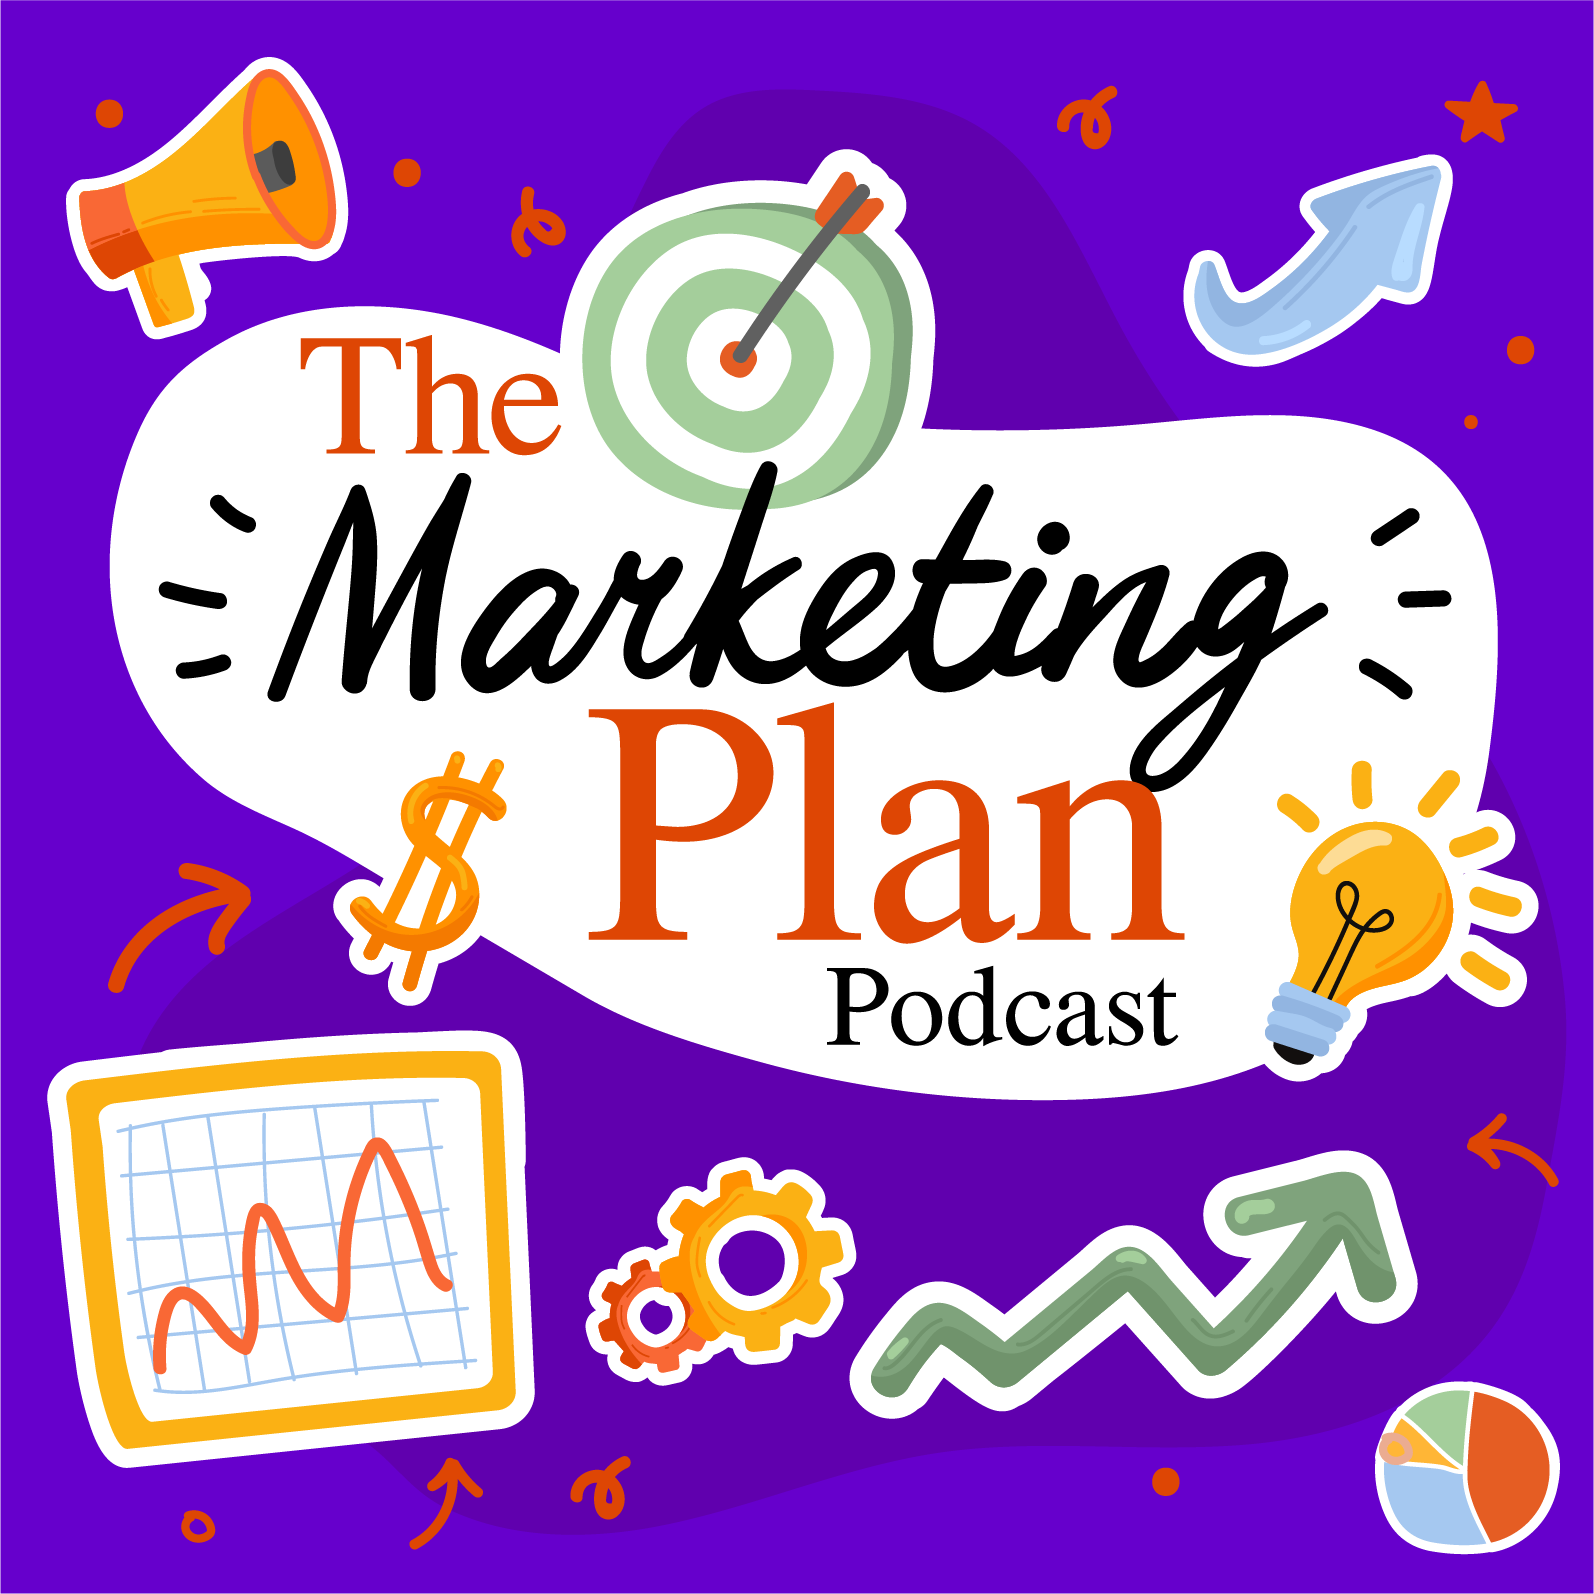 Show artwork for The Marketing Plan Podcast